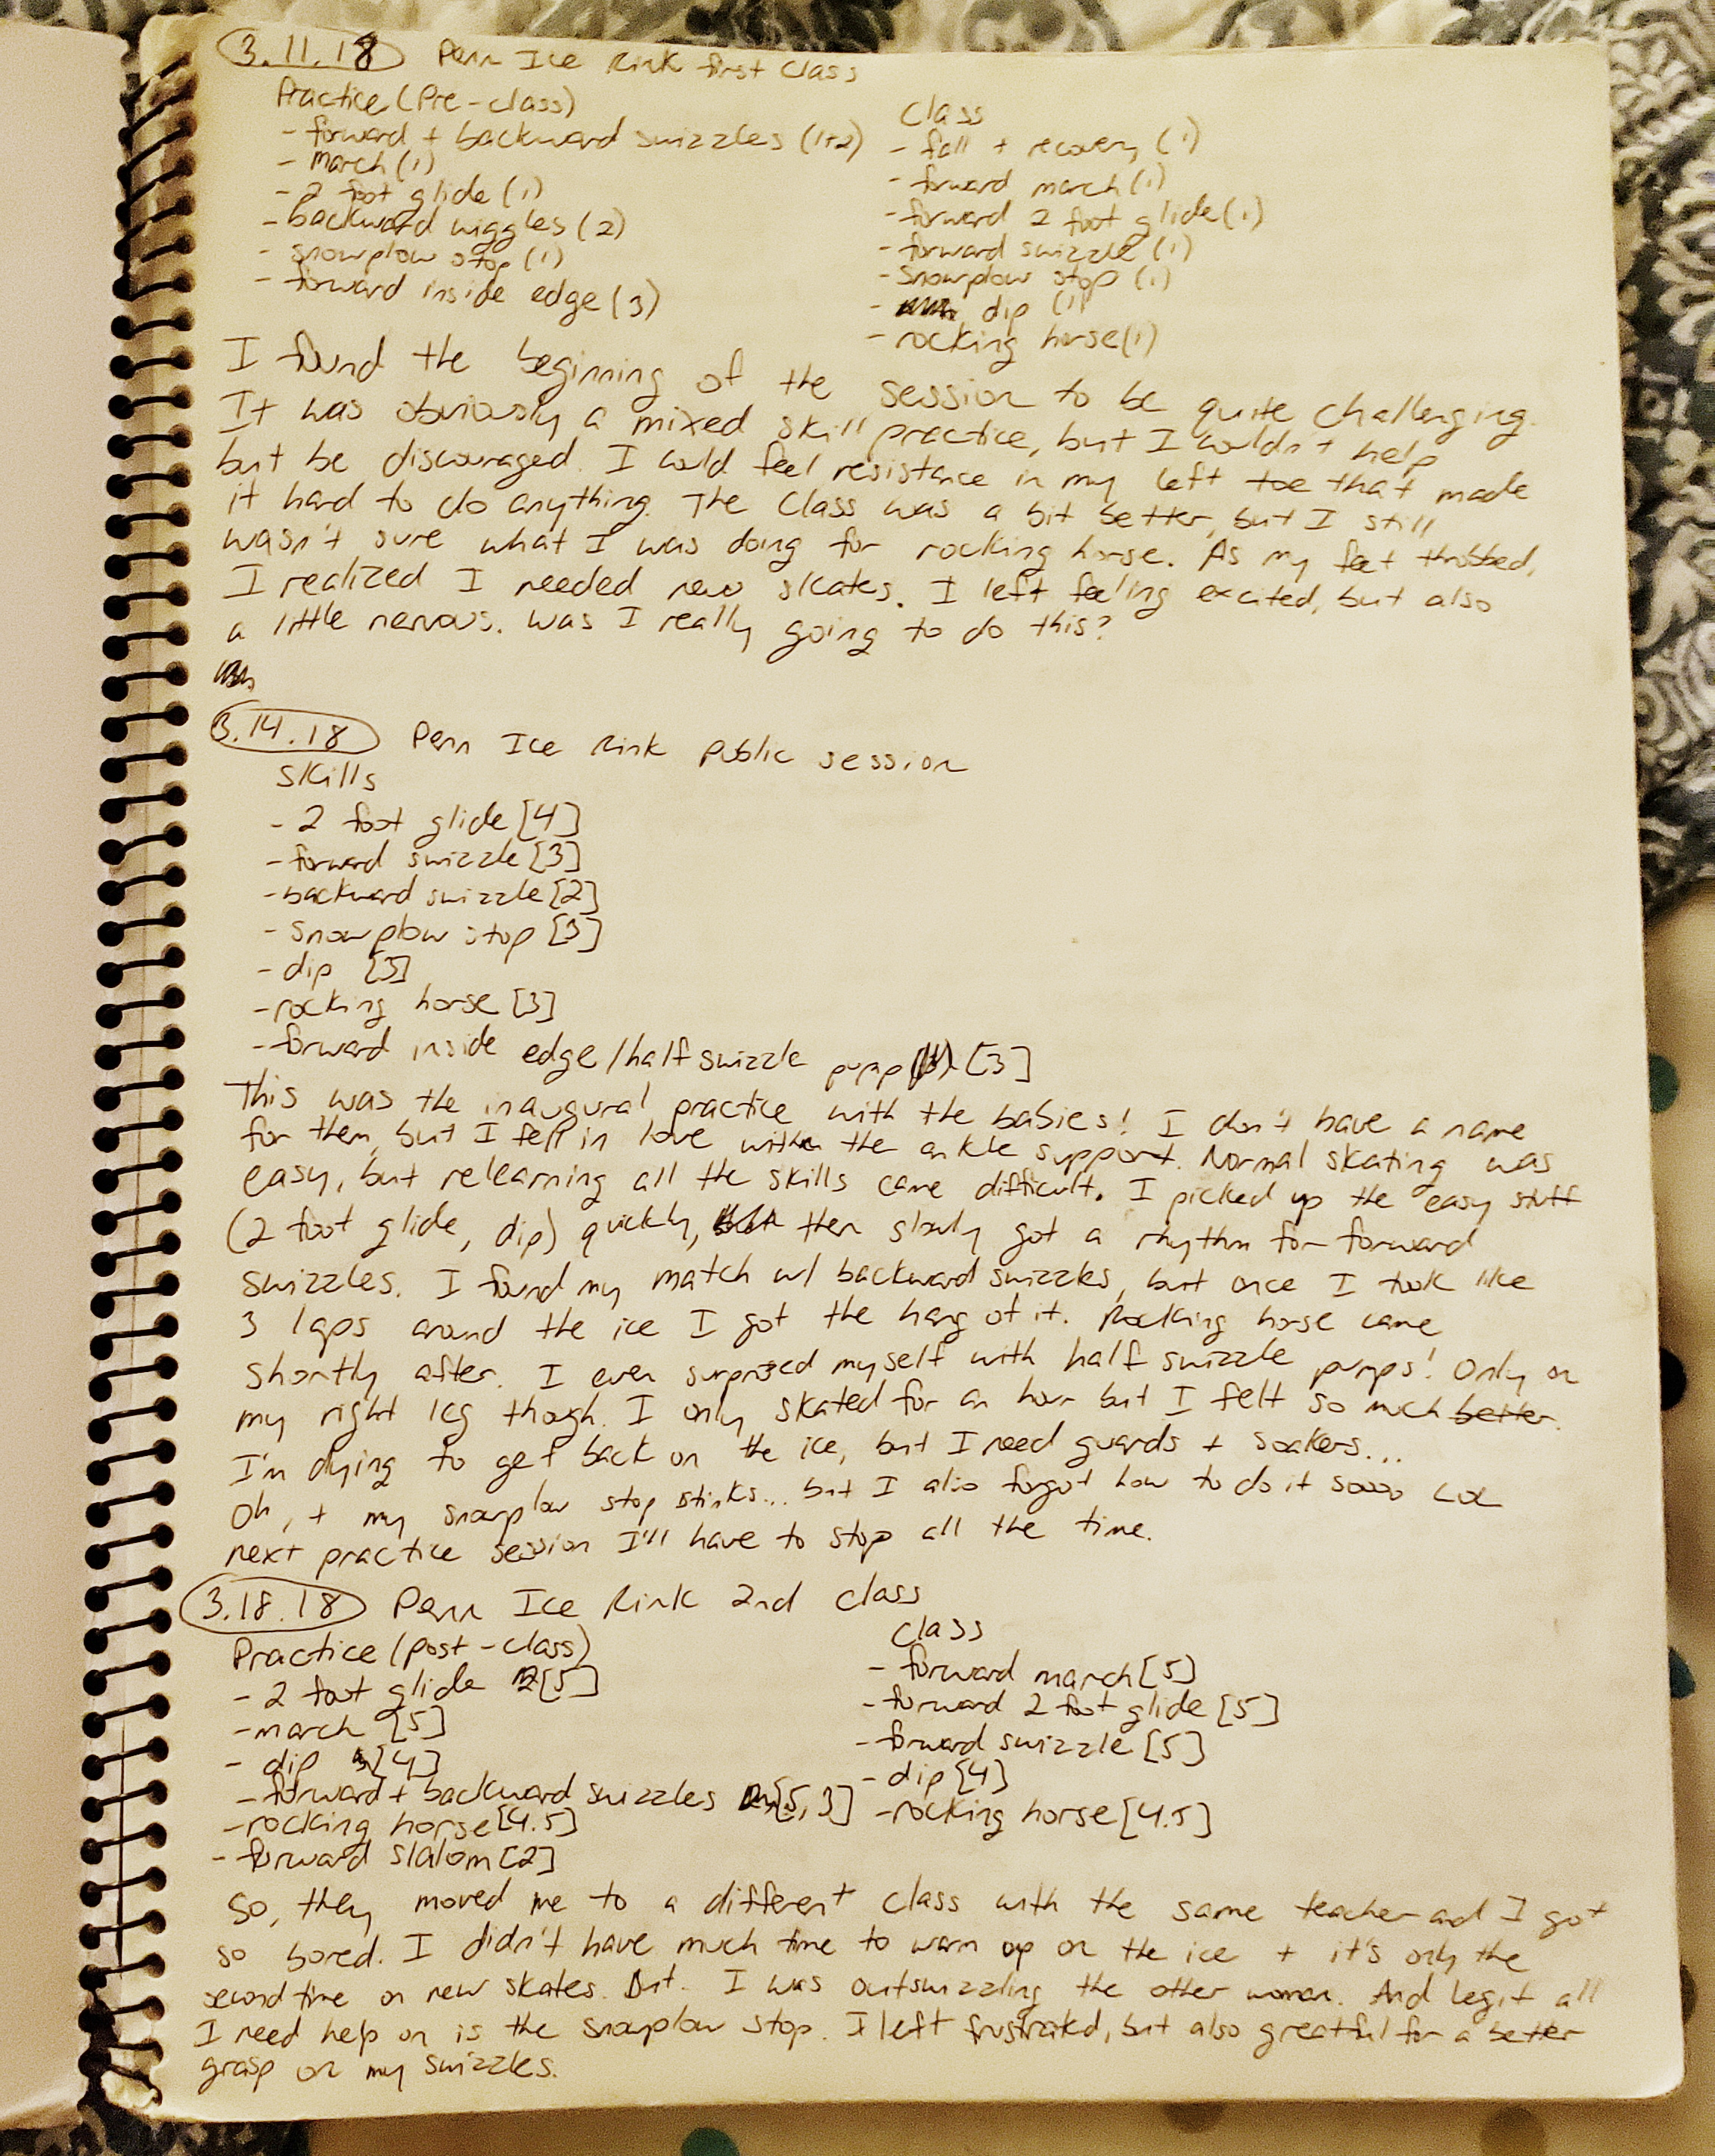 picture of notebook with writings of figure skating